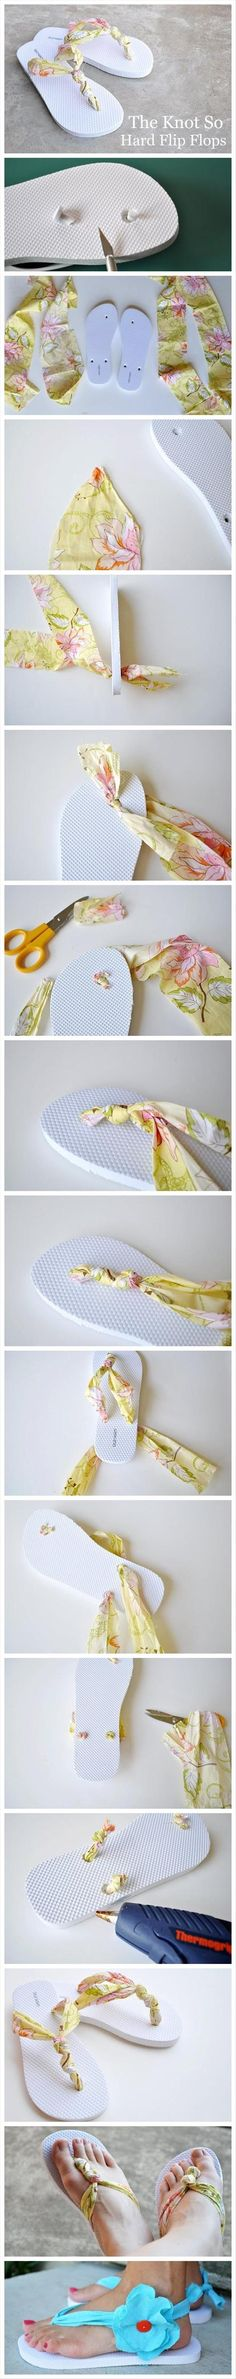 Love the flip flop idea